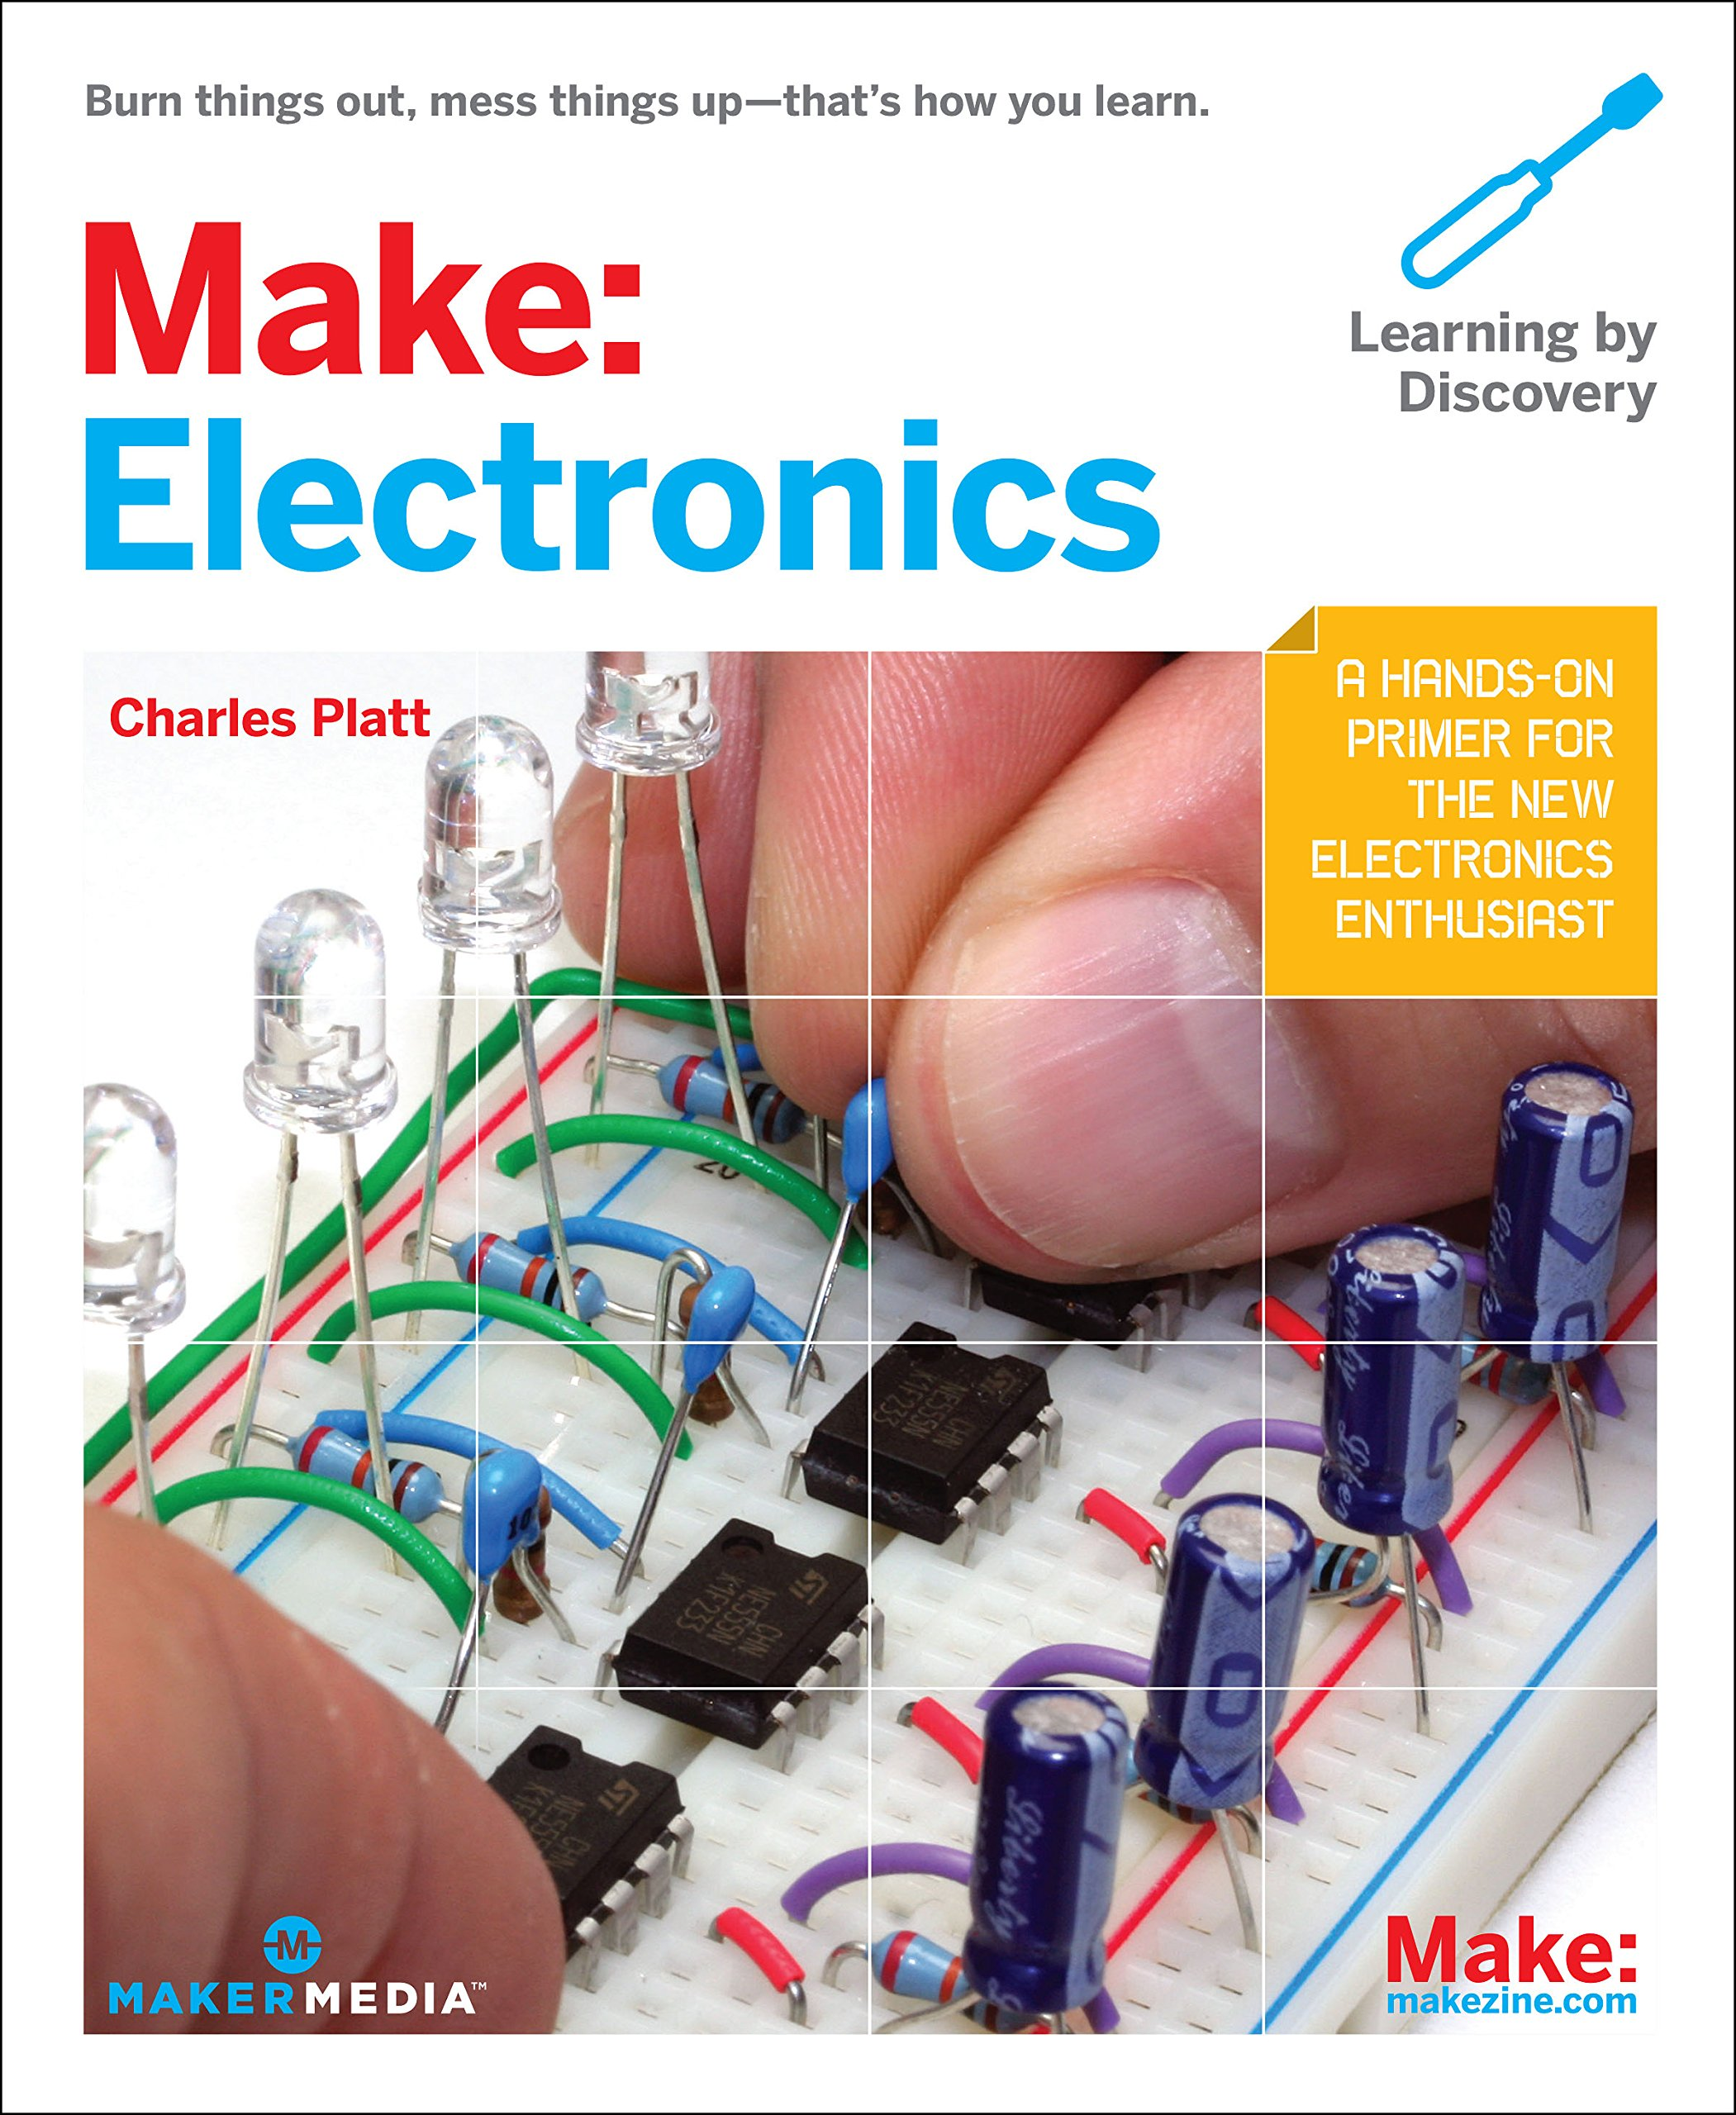 Make Electronics Learning Through Discovery Charles Platt Us Electronic Circuits Tutorials Engineering Hobby Projects 9780596153748 Books